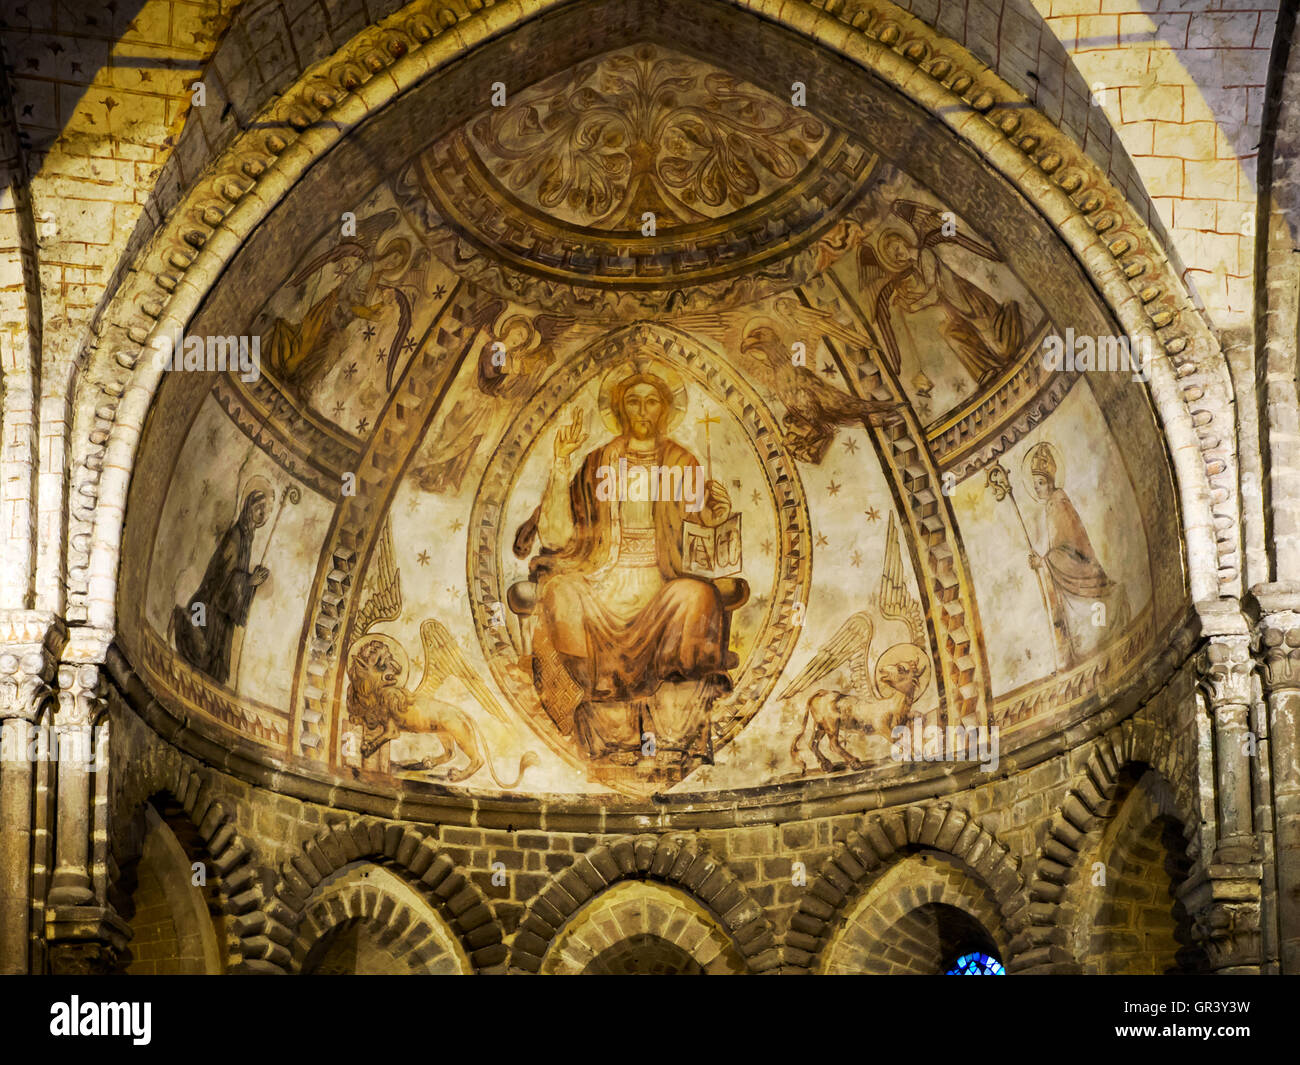 Mural in the 12th century Chapel of St Crepin (St Crispin) in the Basilique d'Evron church, a medieval masterpiece. - Stock Image